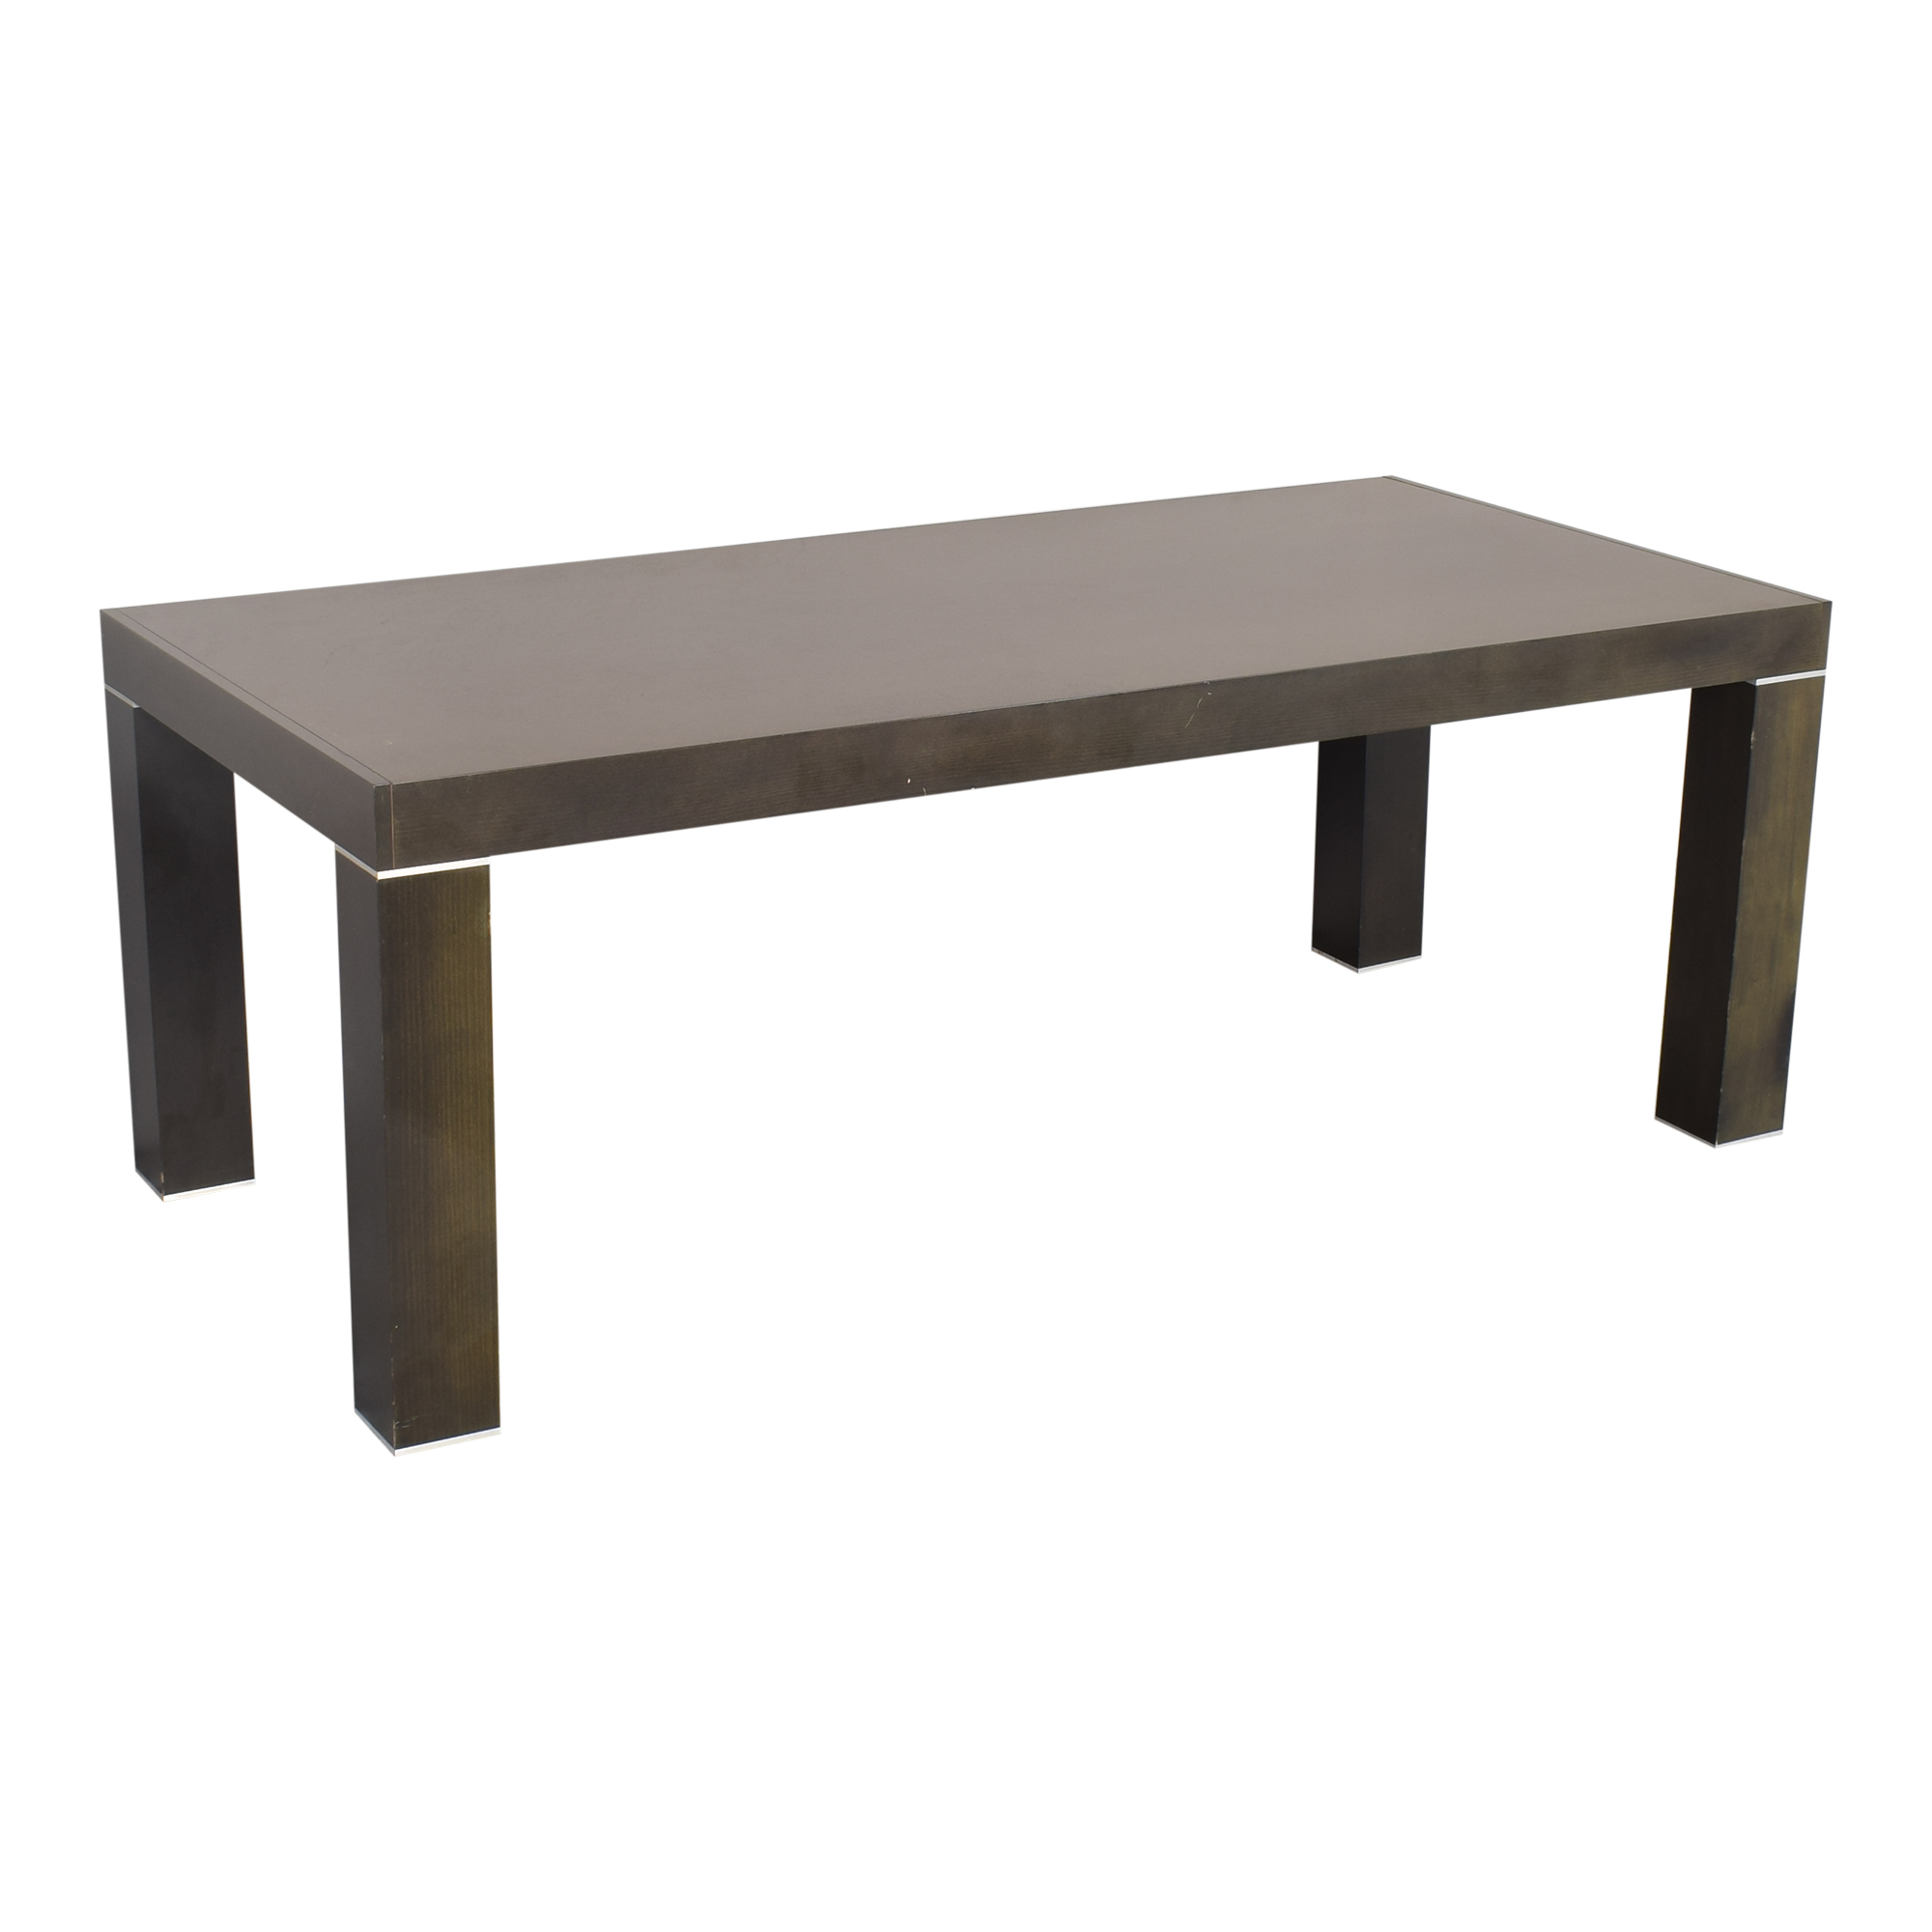 Roche Bobois Roche Bobois Rectangular Dining Table on sale